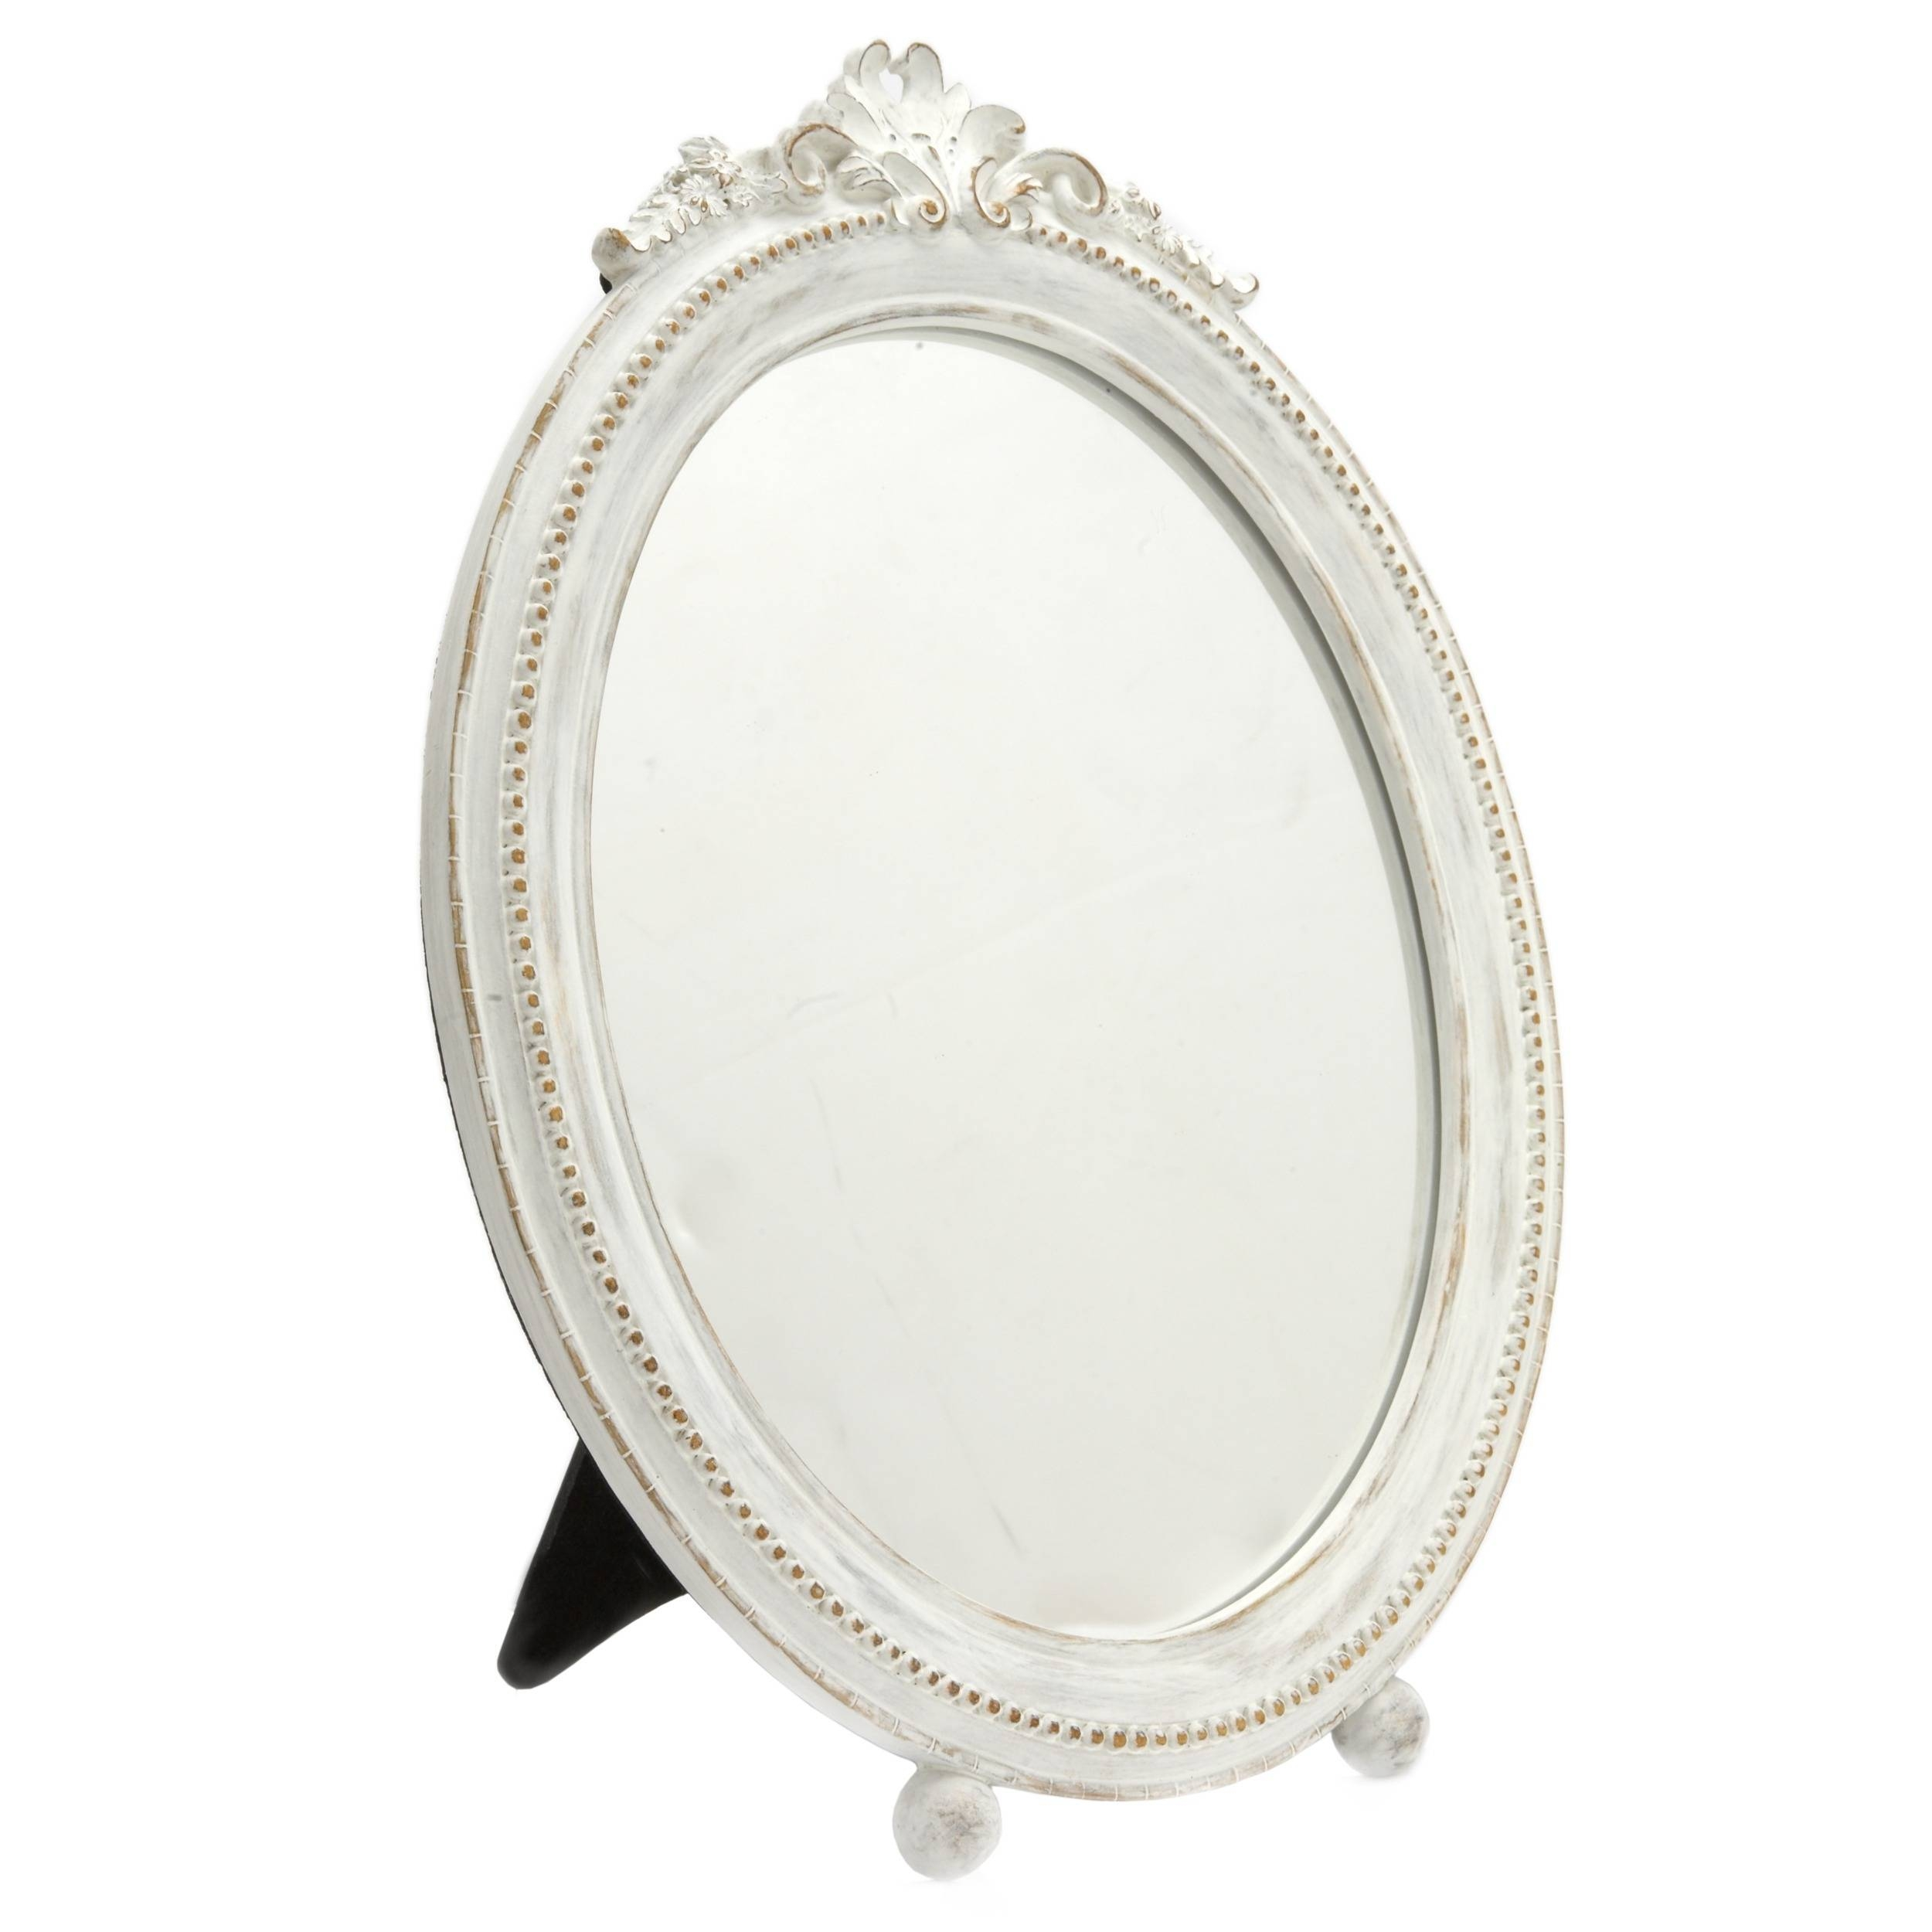 Dressing Table Mirror | Find It For Less intended for Free Standing Dressing Table Mirrors (Image 3 of 15)